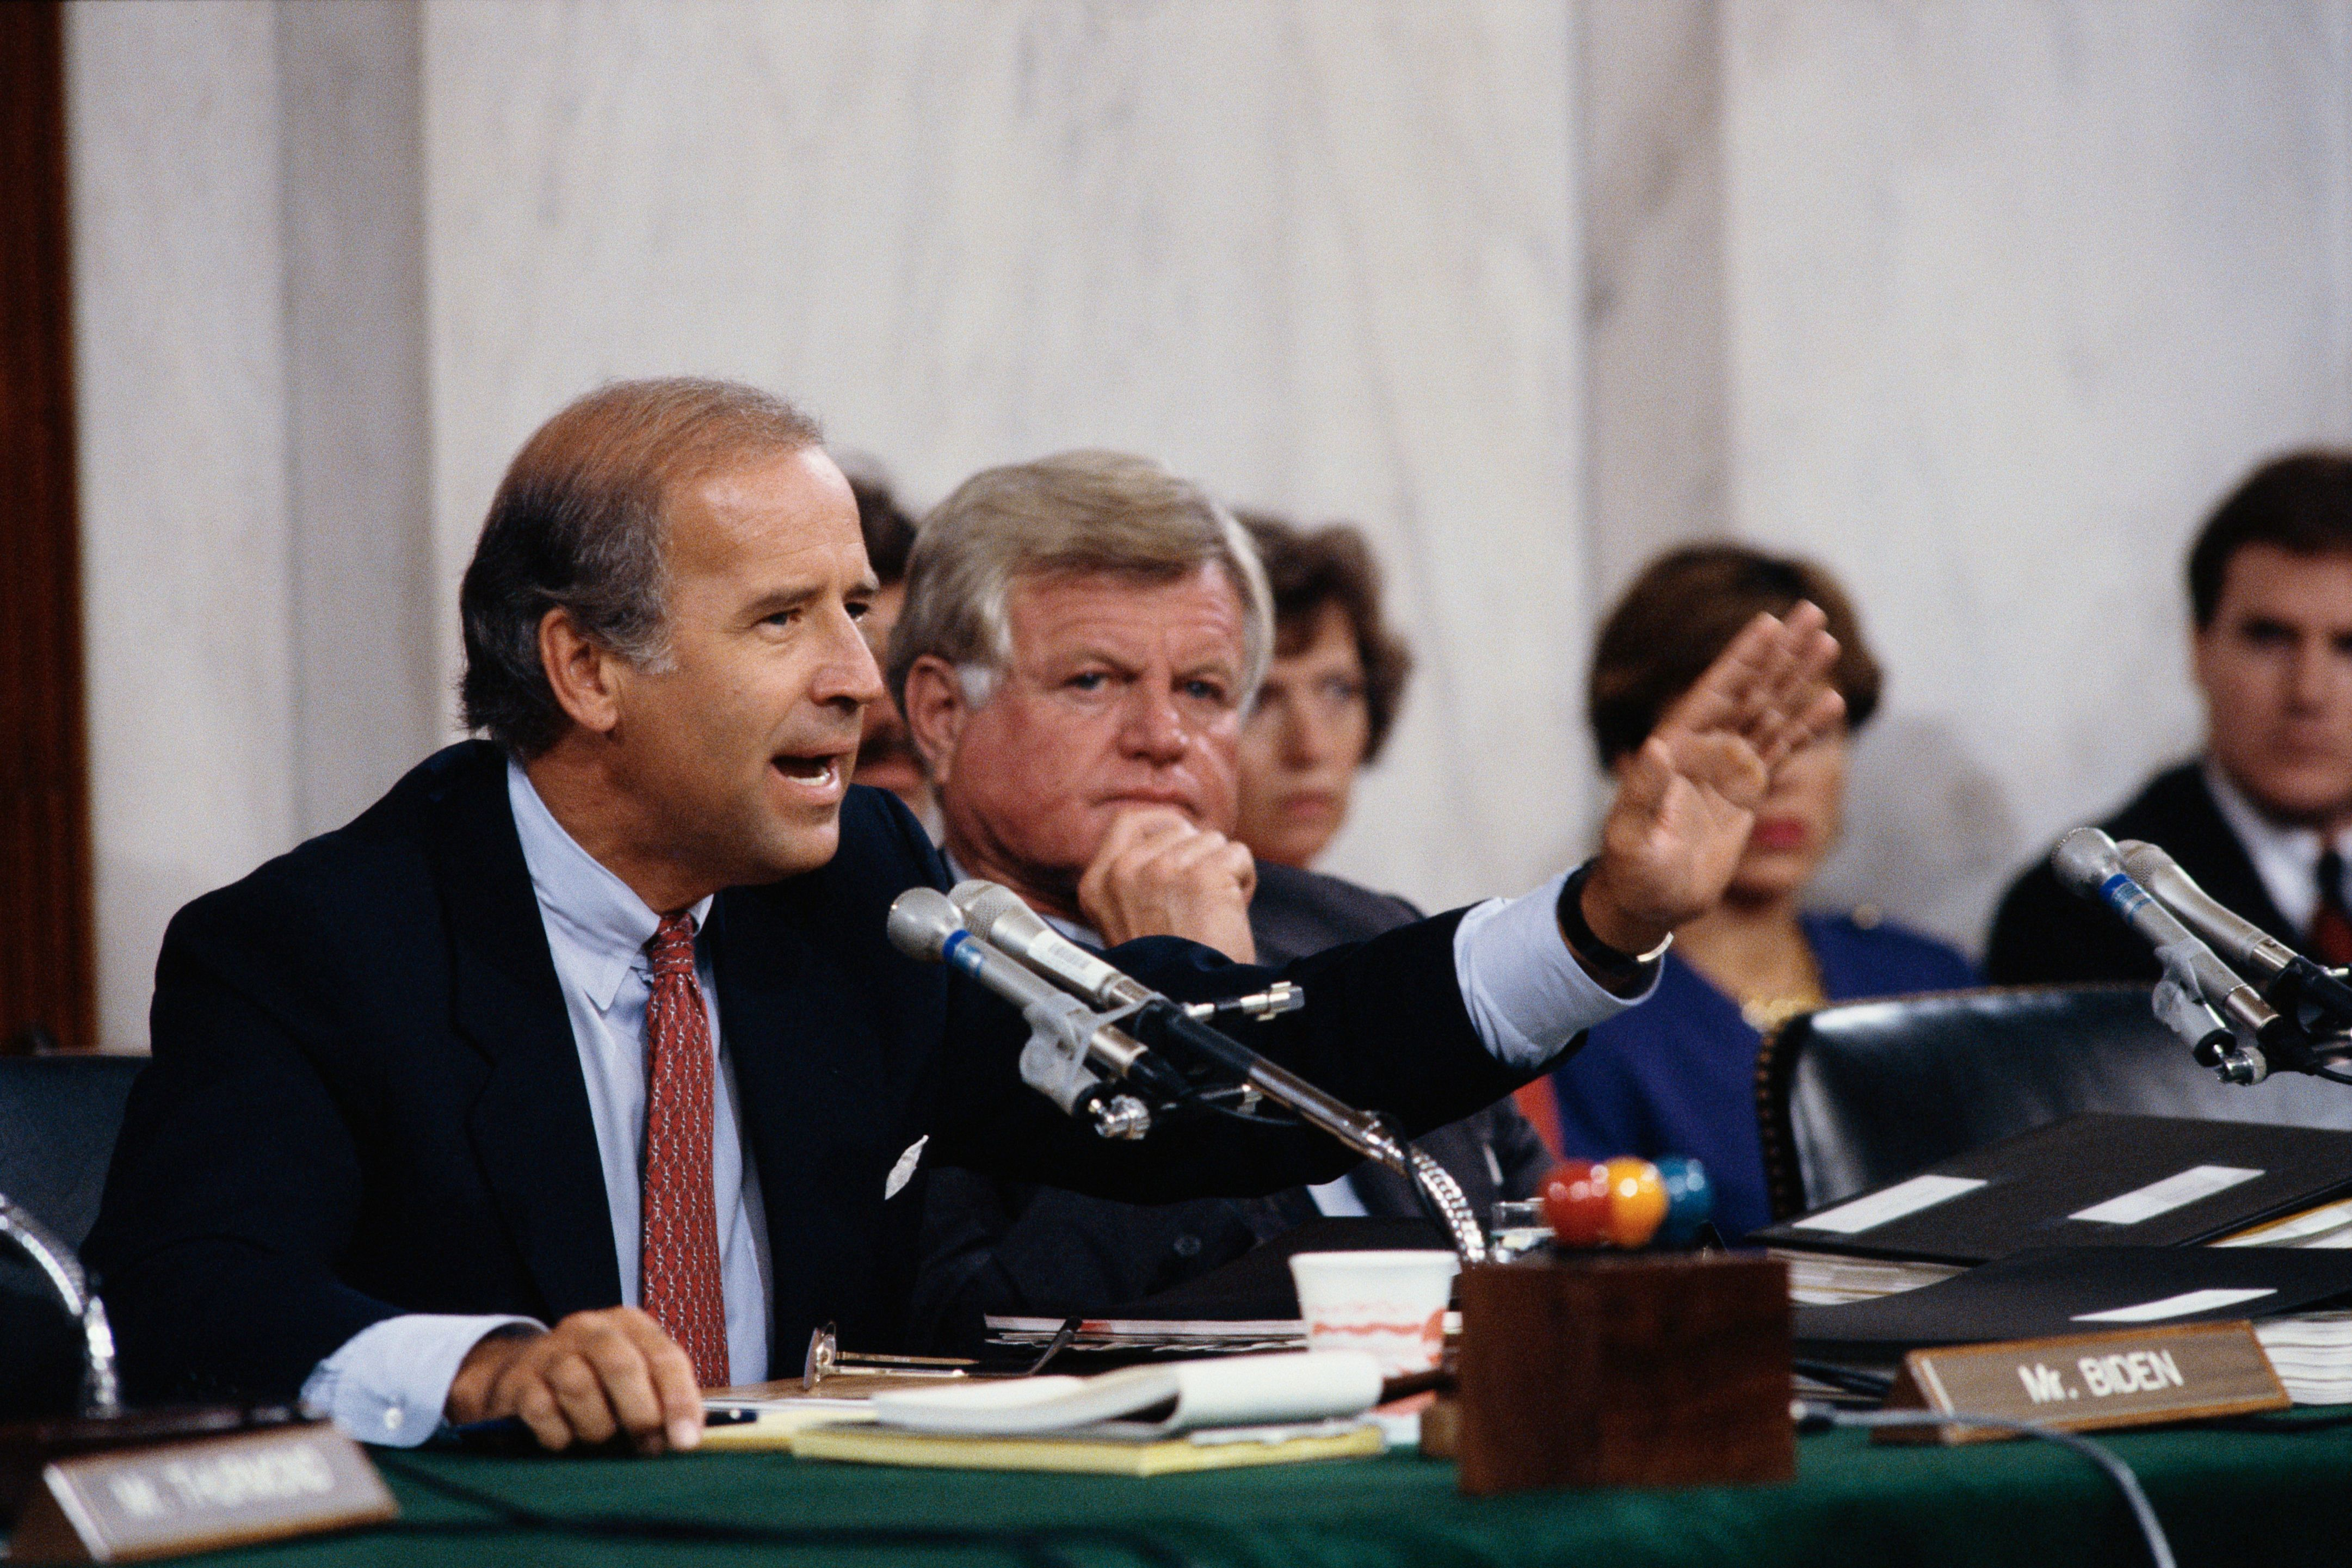 Senators Joseph Biden and Ted Kennedy During the Clarence Thomas Confirmation Hearings (Photo by © Wally McNamee/CORBIS/Corbis via Getty Images)